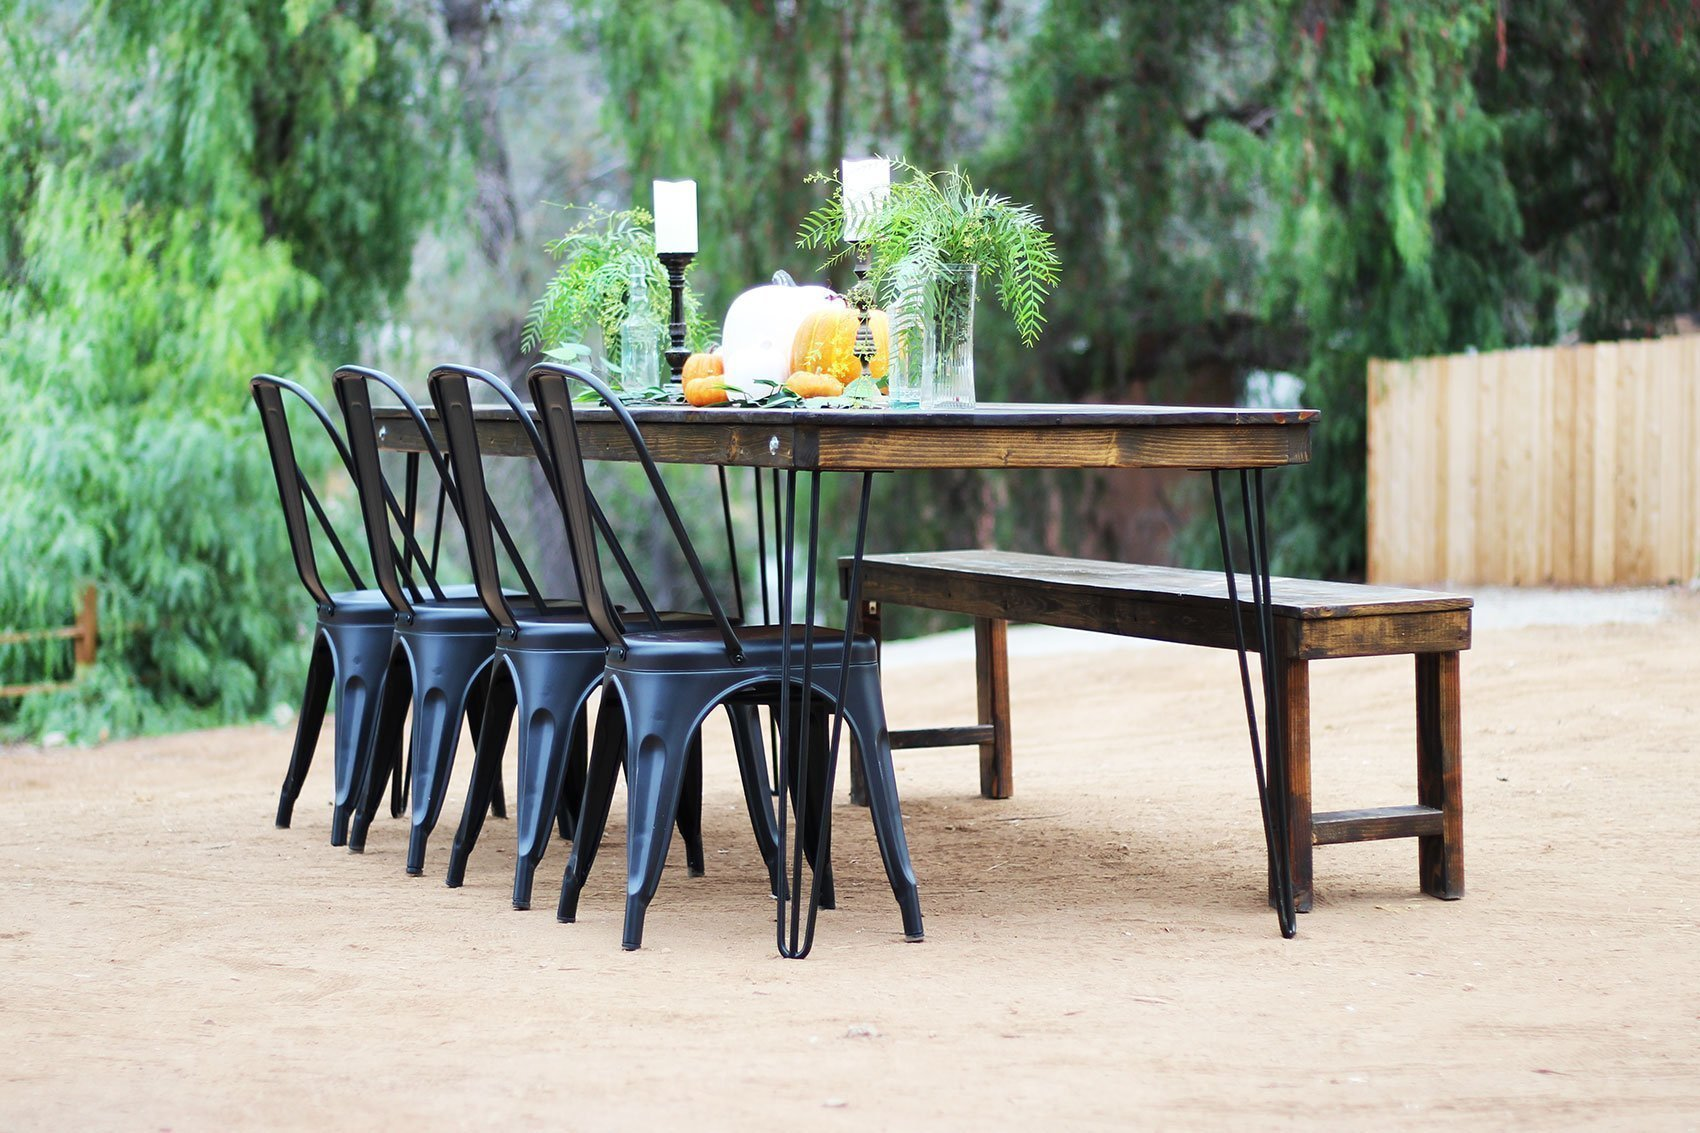 Farm Table & Bench Rentals